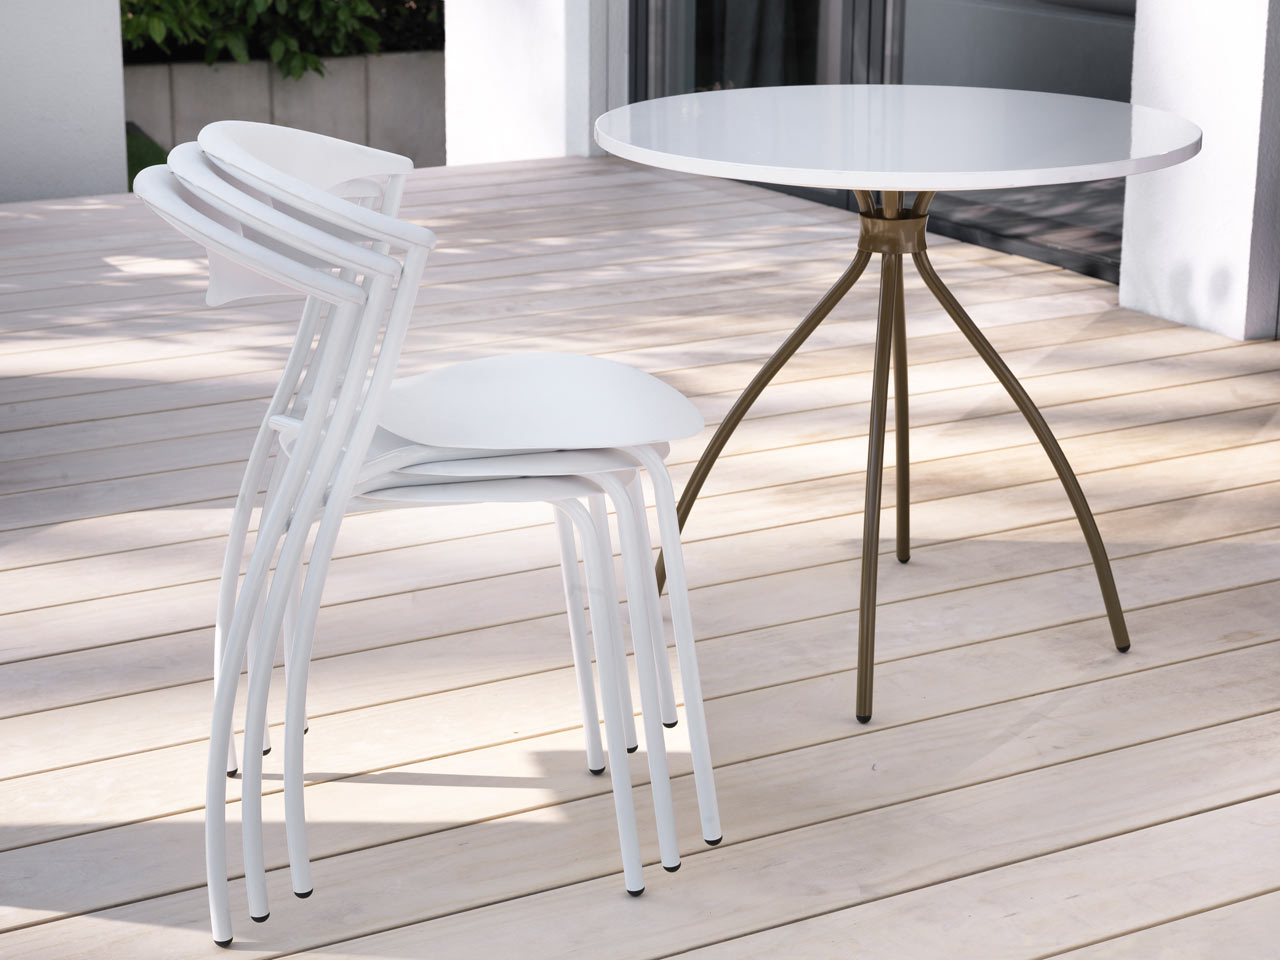 ames-outdoor-dreki-chair-table-6